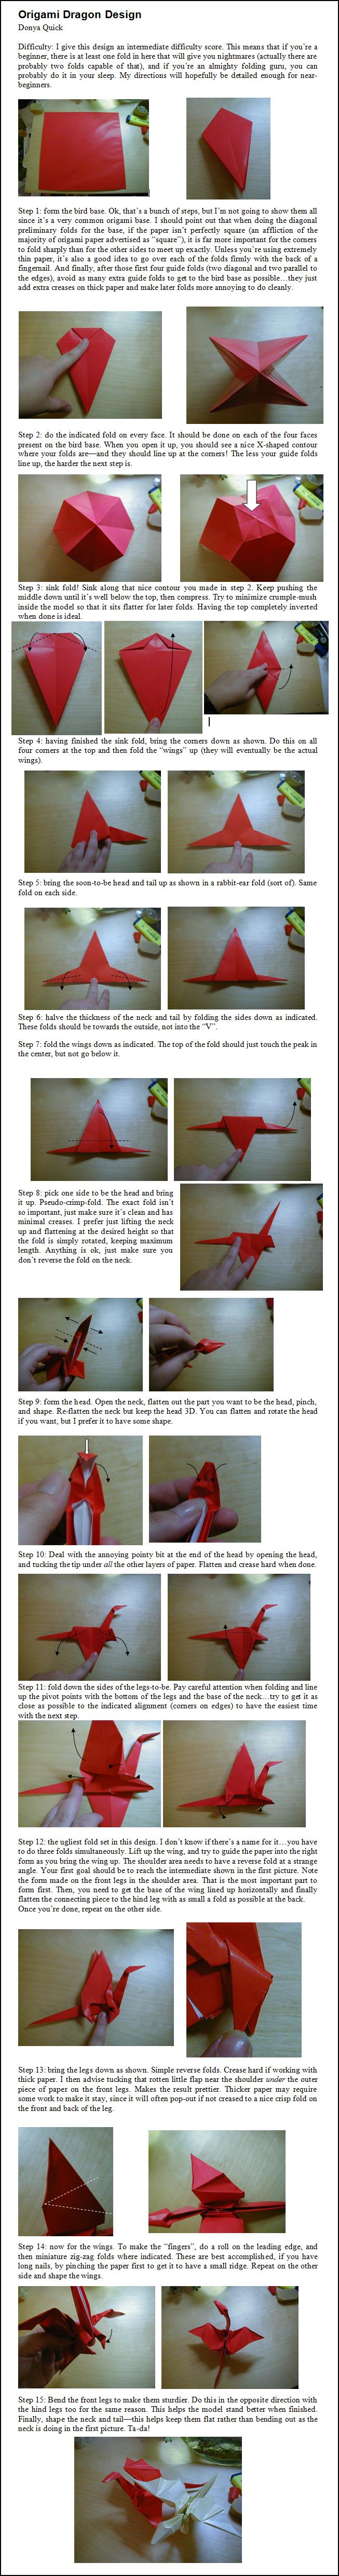 Origami Chinese Dragon Instructionsorigami Modular Diagrams Instructions